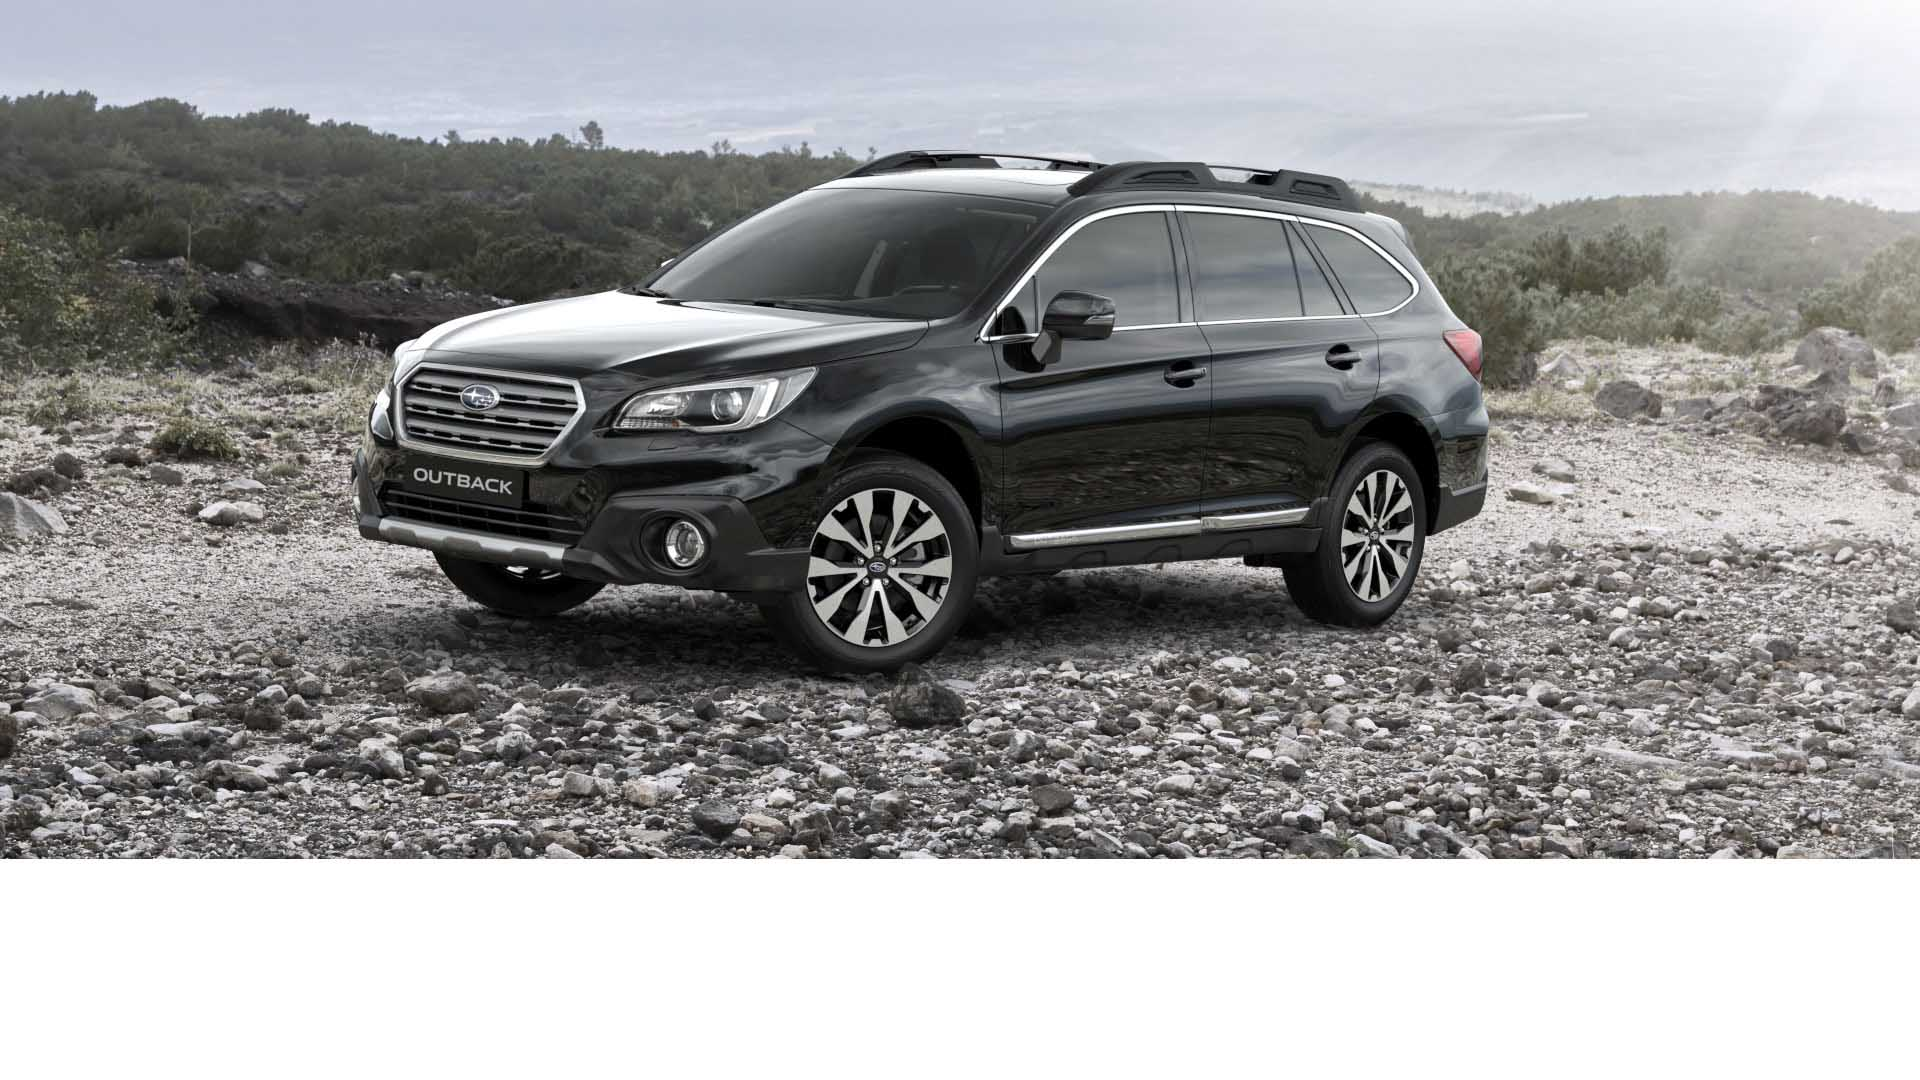 2017 Subaru Outback Color Options Subaru Outback Colors